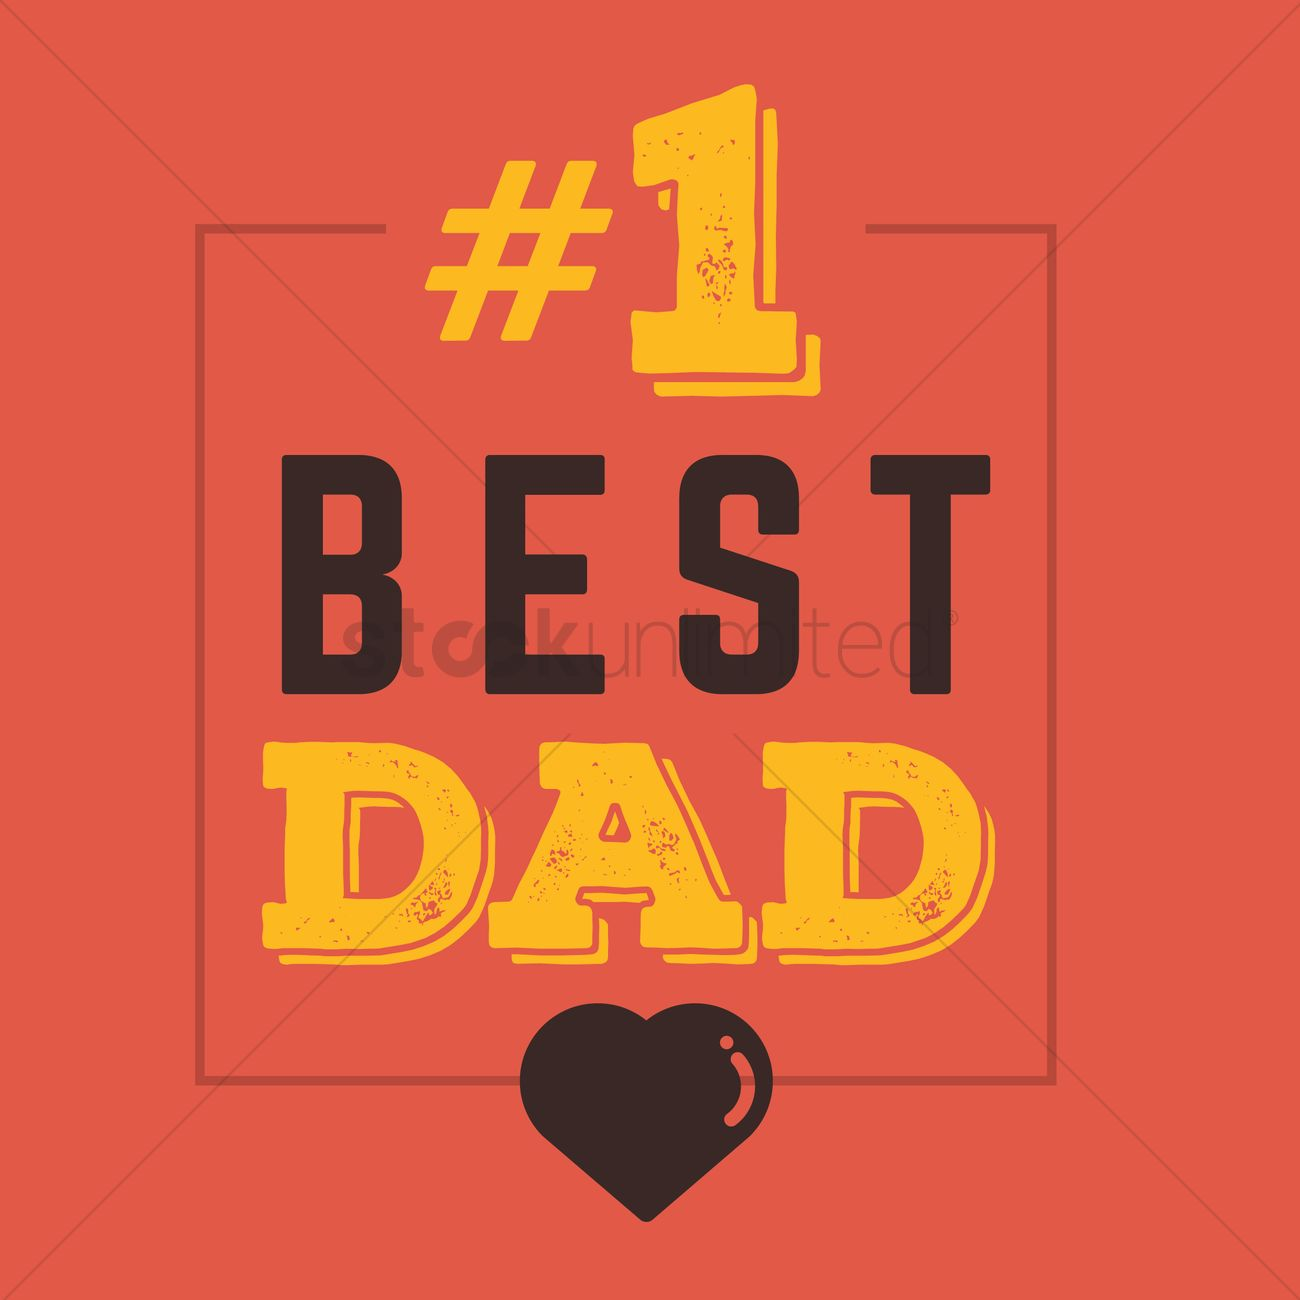 Fathers Day Greeting Card Vector Image 1540267 Stockunlimited